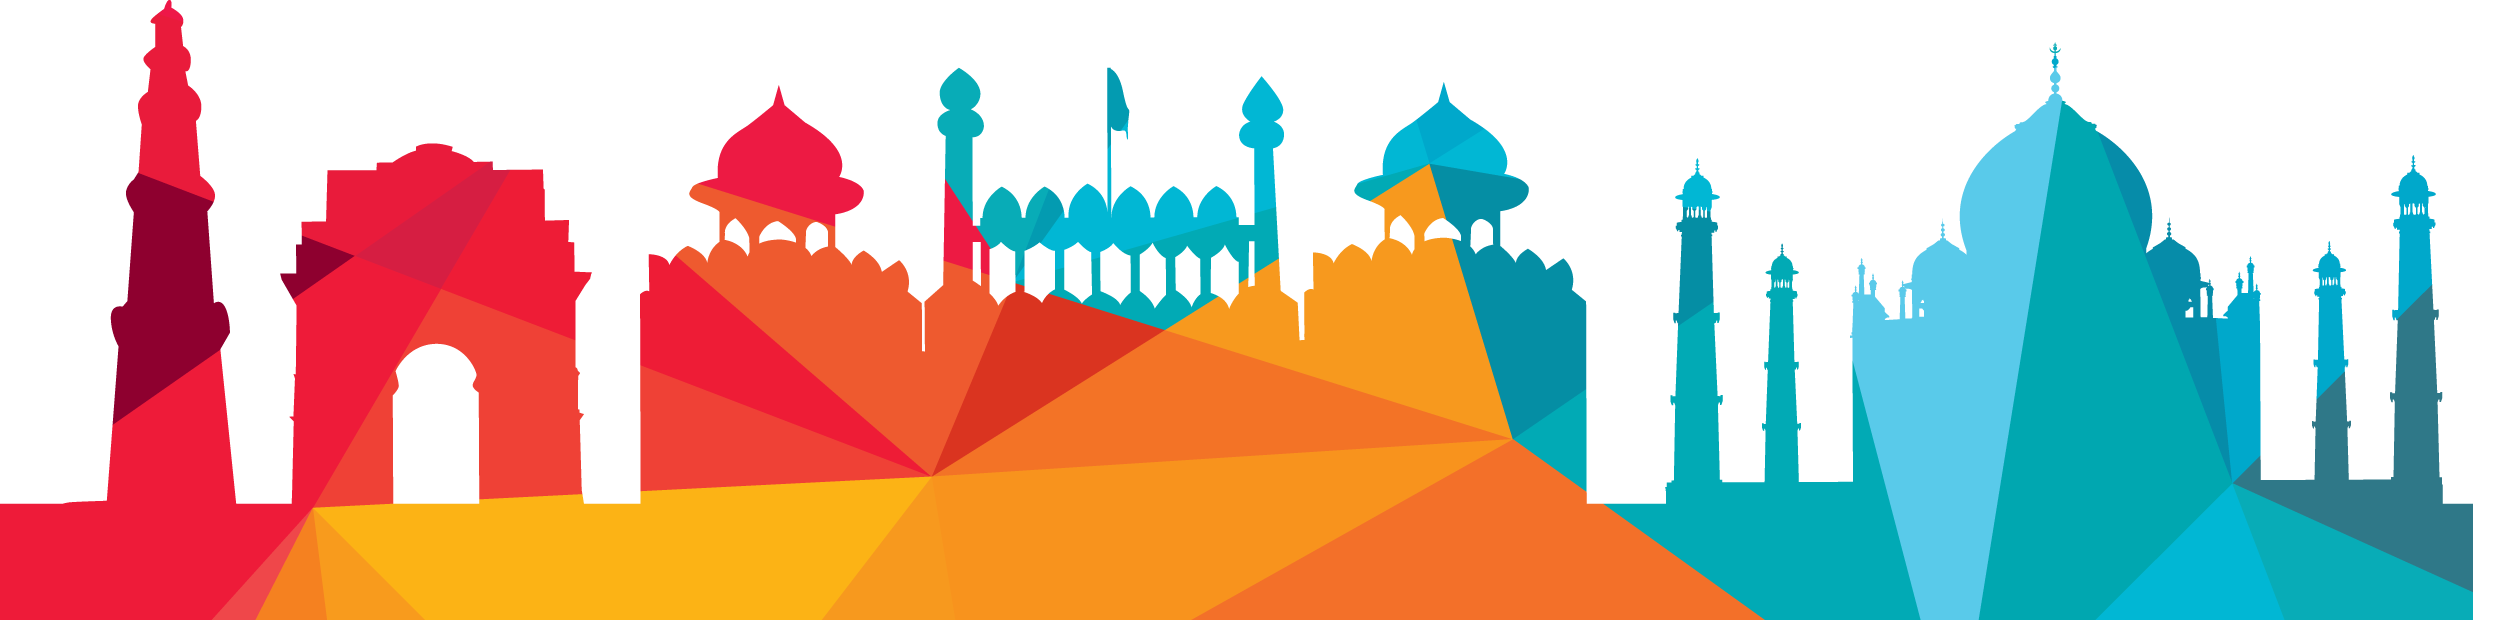 India Convergence 2017 - India PNG